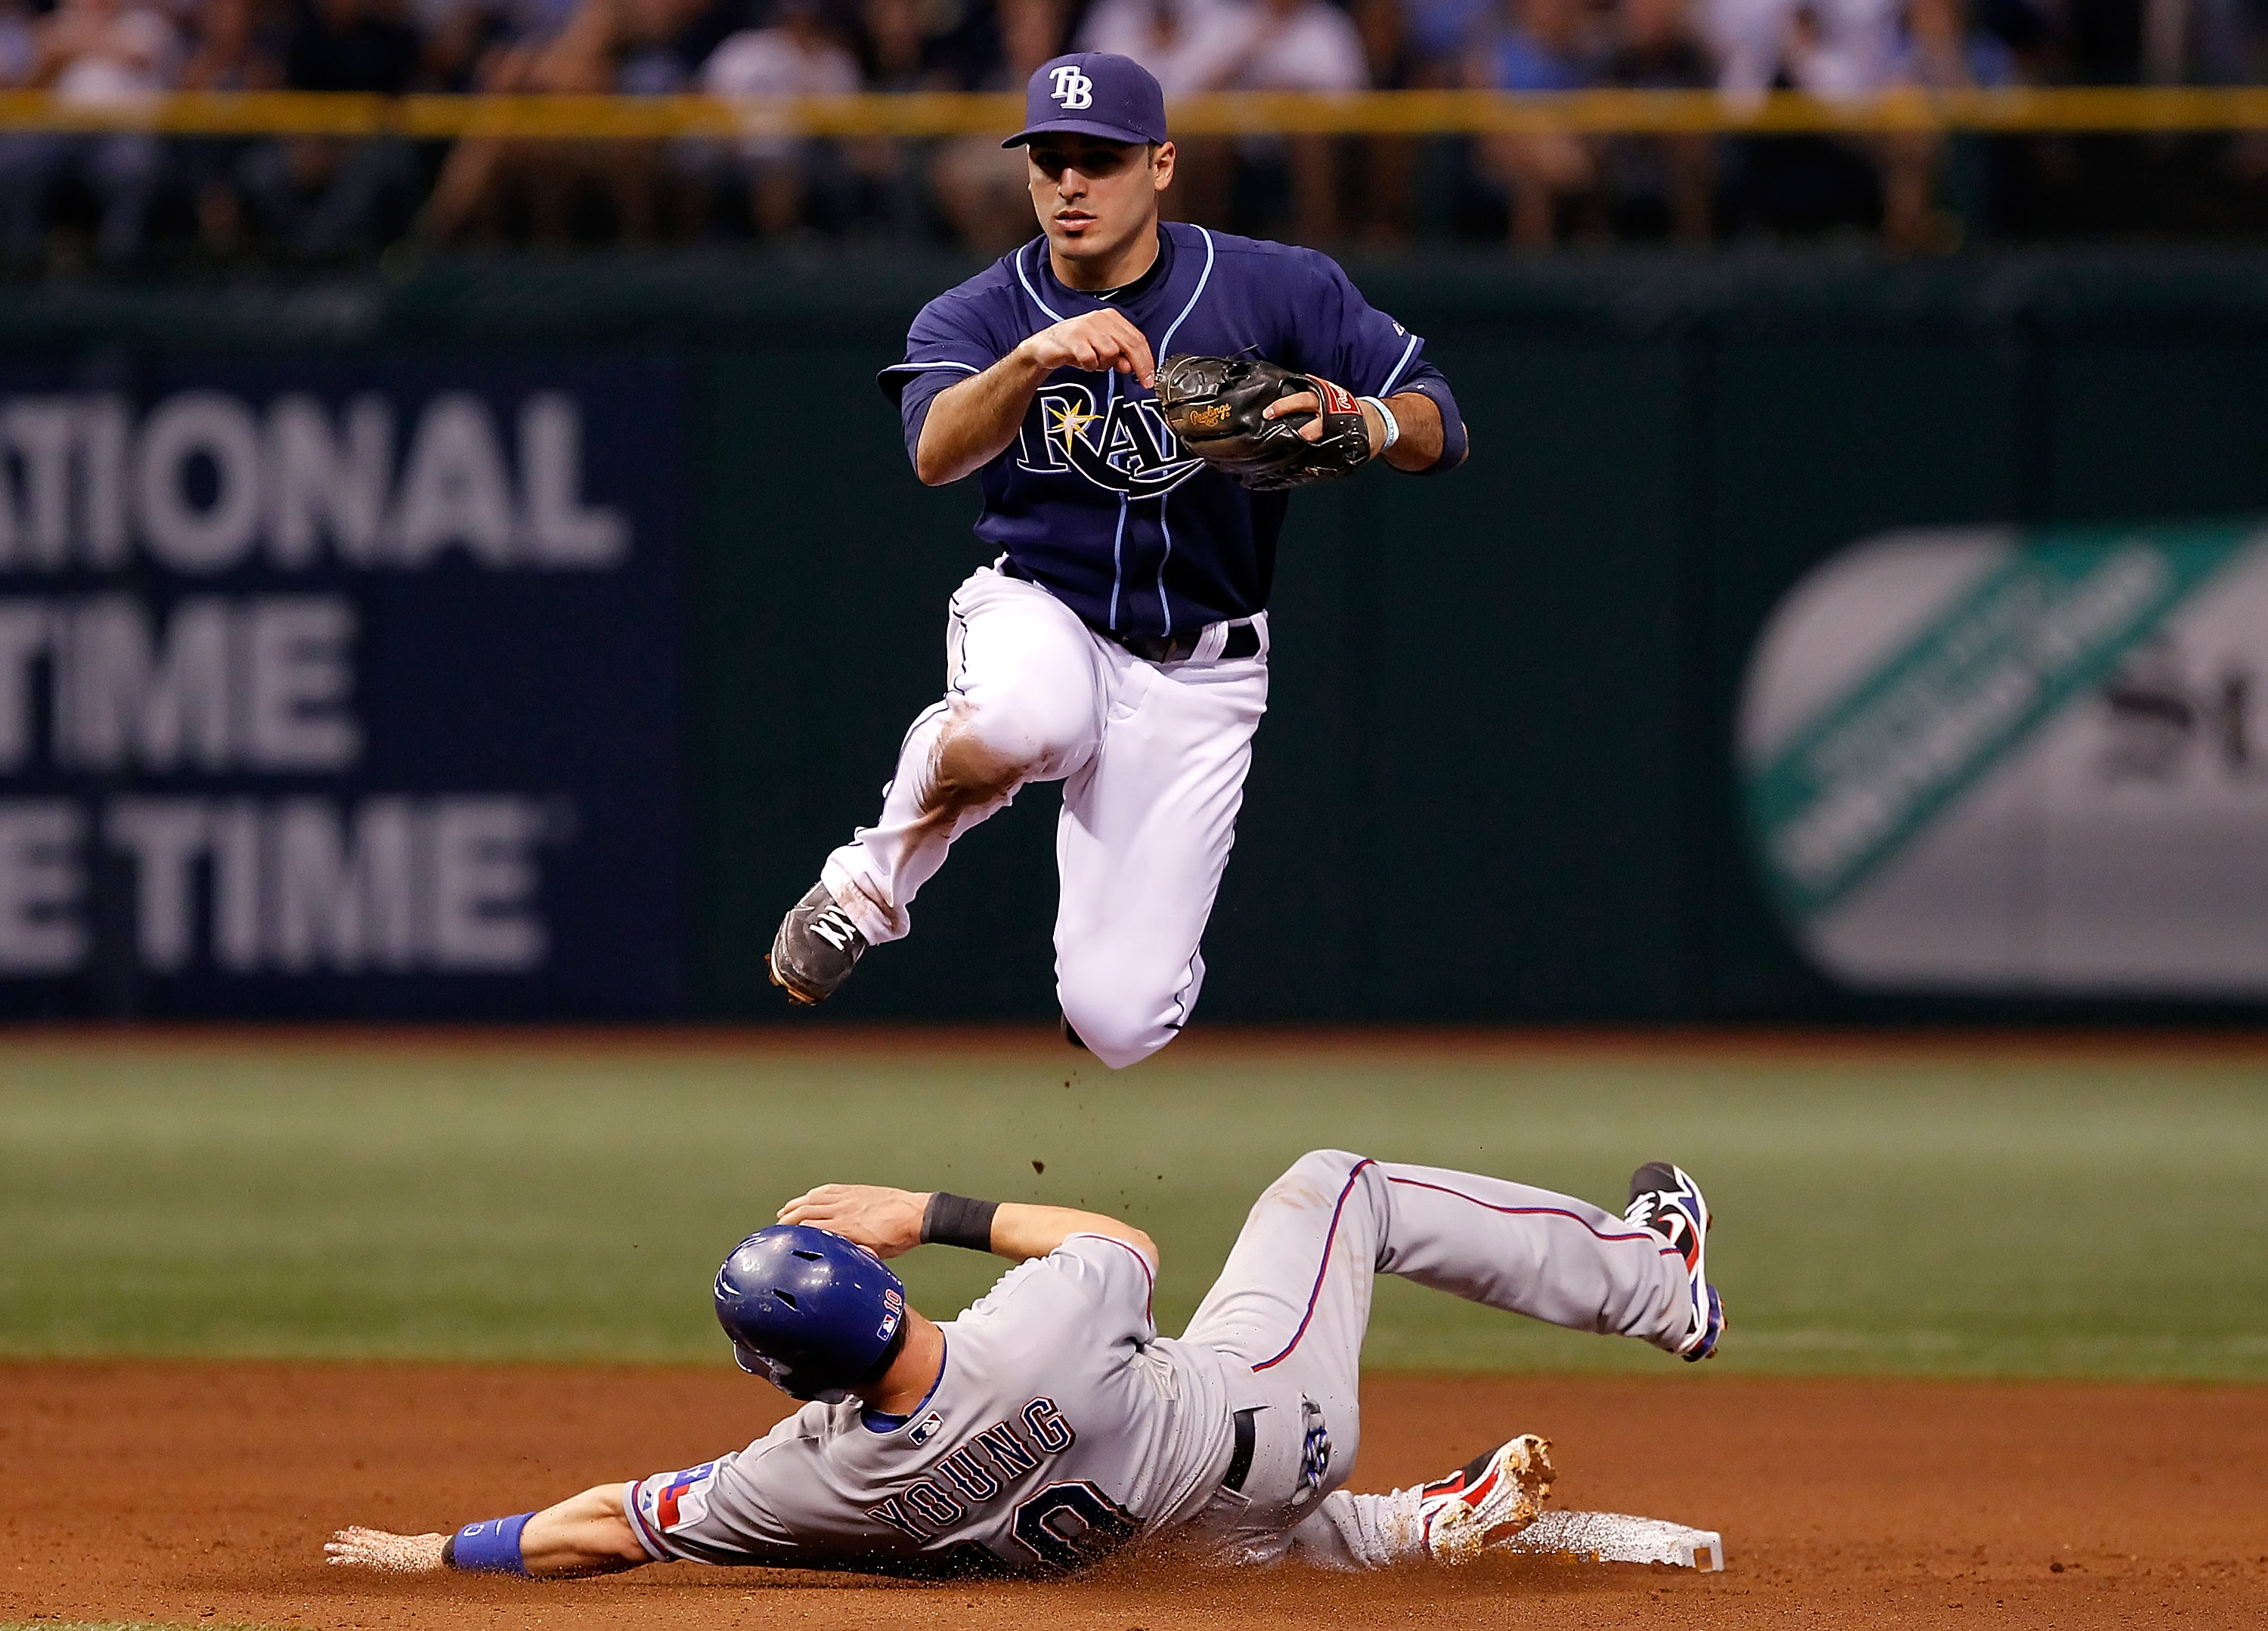 ST. PETERSBURG, FL - OCTOBER 12:  Infielder Sean Rodriguez #1 of the Tampa Bay Rays turns a double play as Michael Young #10 of the Texas Rangers tries to break it up during Game 5 of the ALDS at Tropicana Field on October 12, 2010 in St. Petersburg, Flor